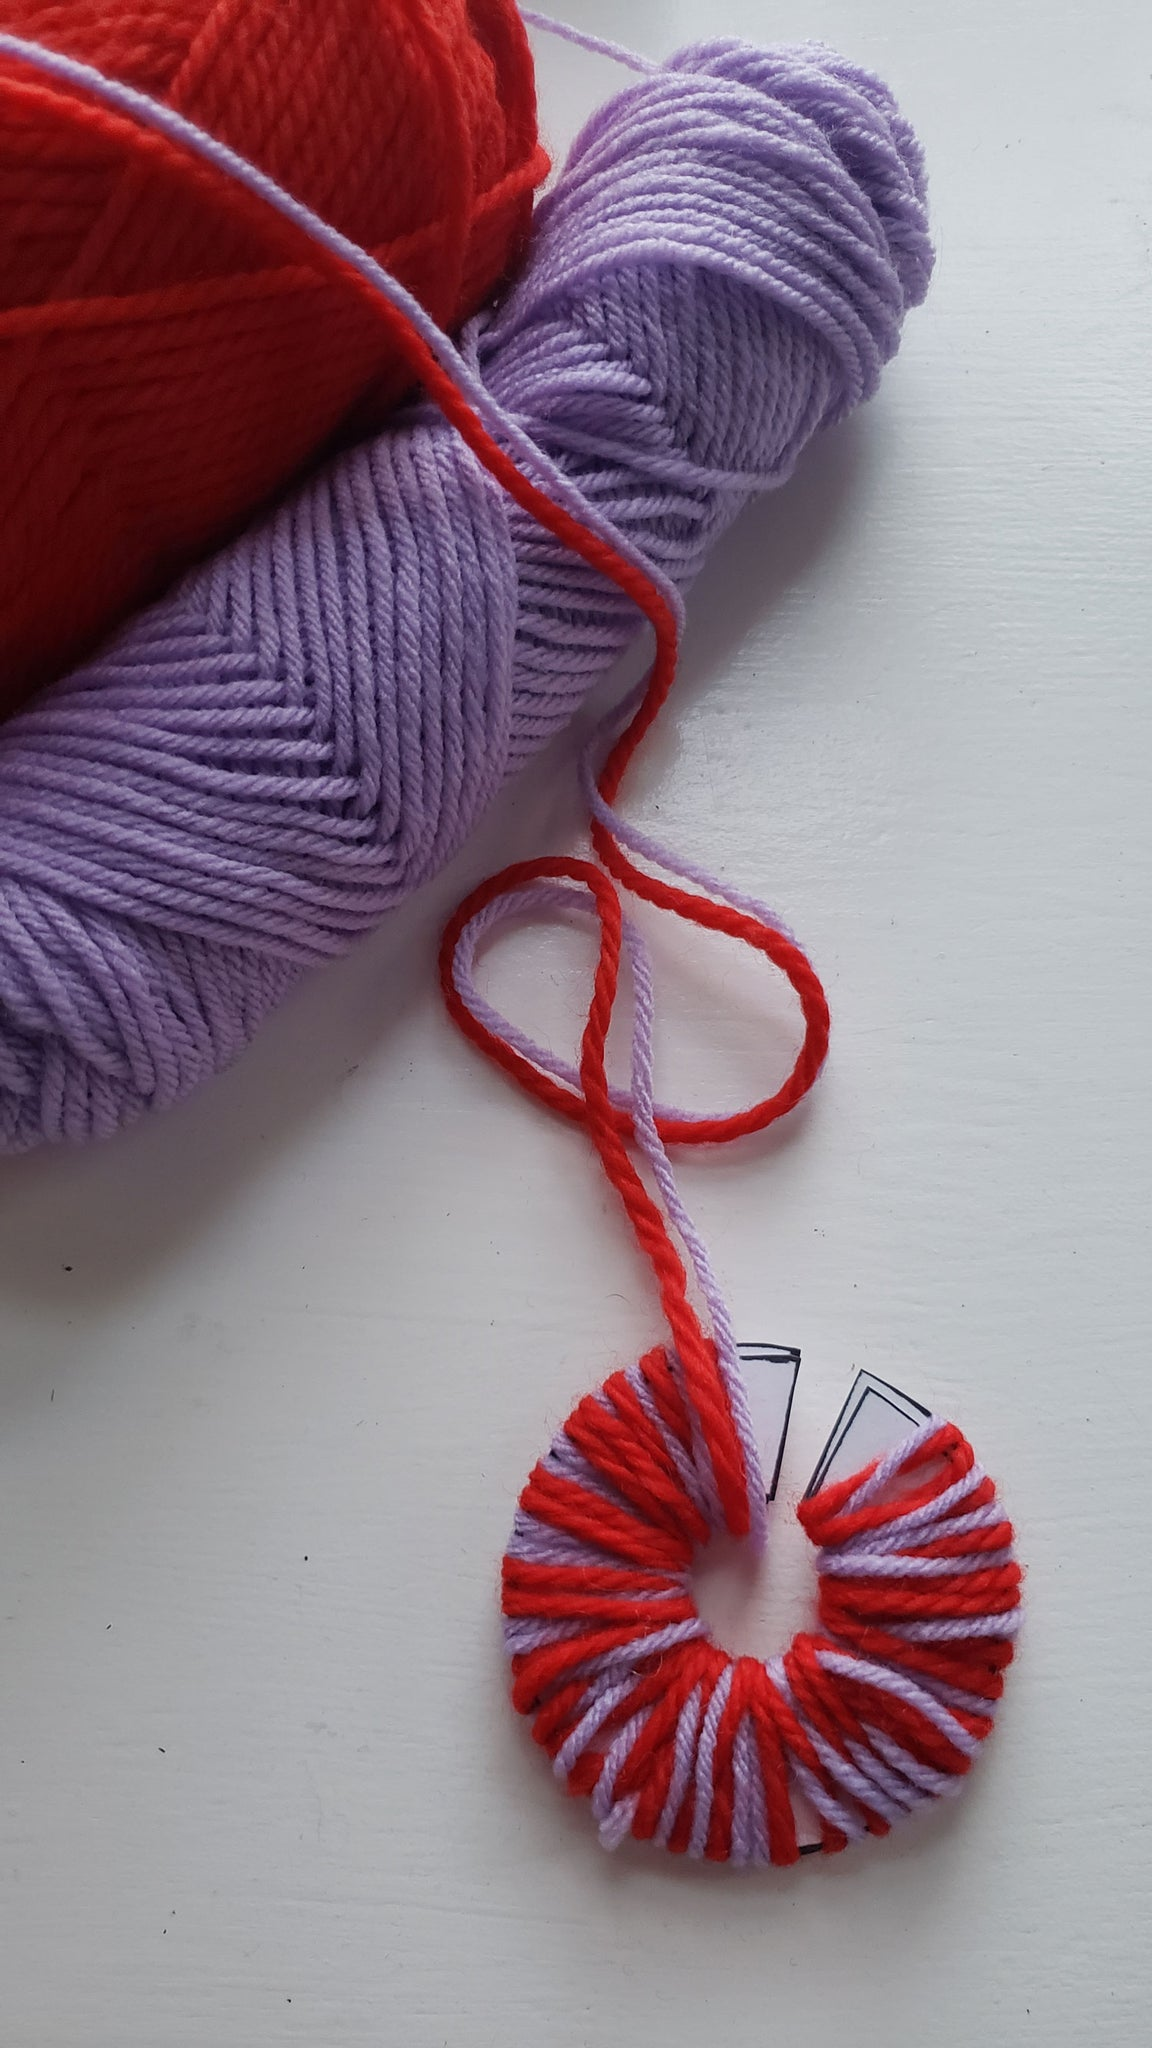 Red and purple yarn is being wrapped around a circular disk